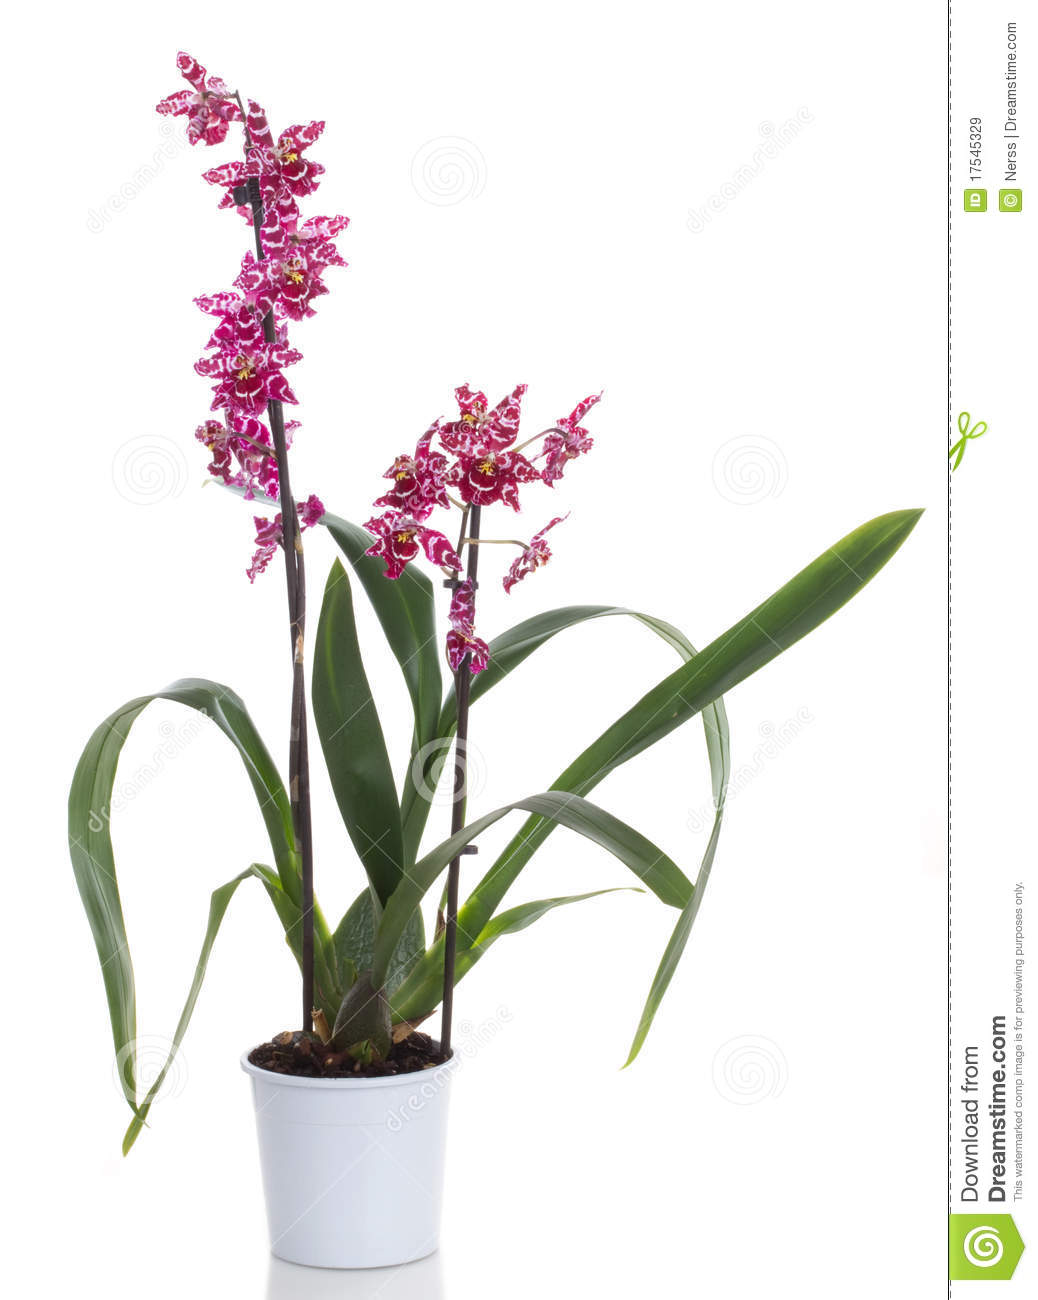 orchid flowers royalty free stock images  image, Beautiful flower